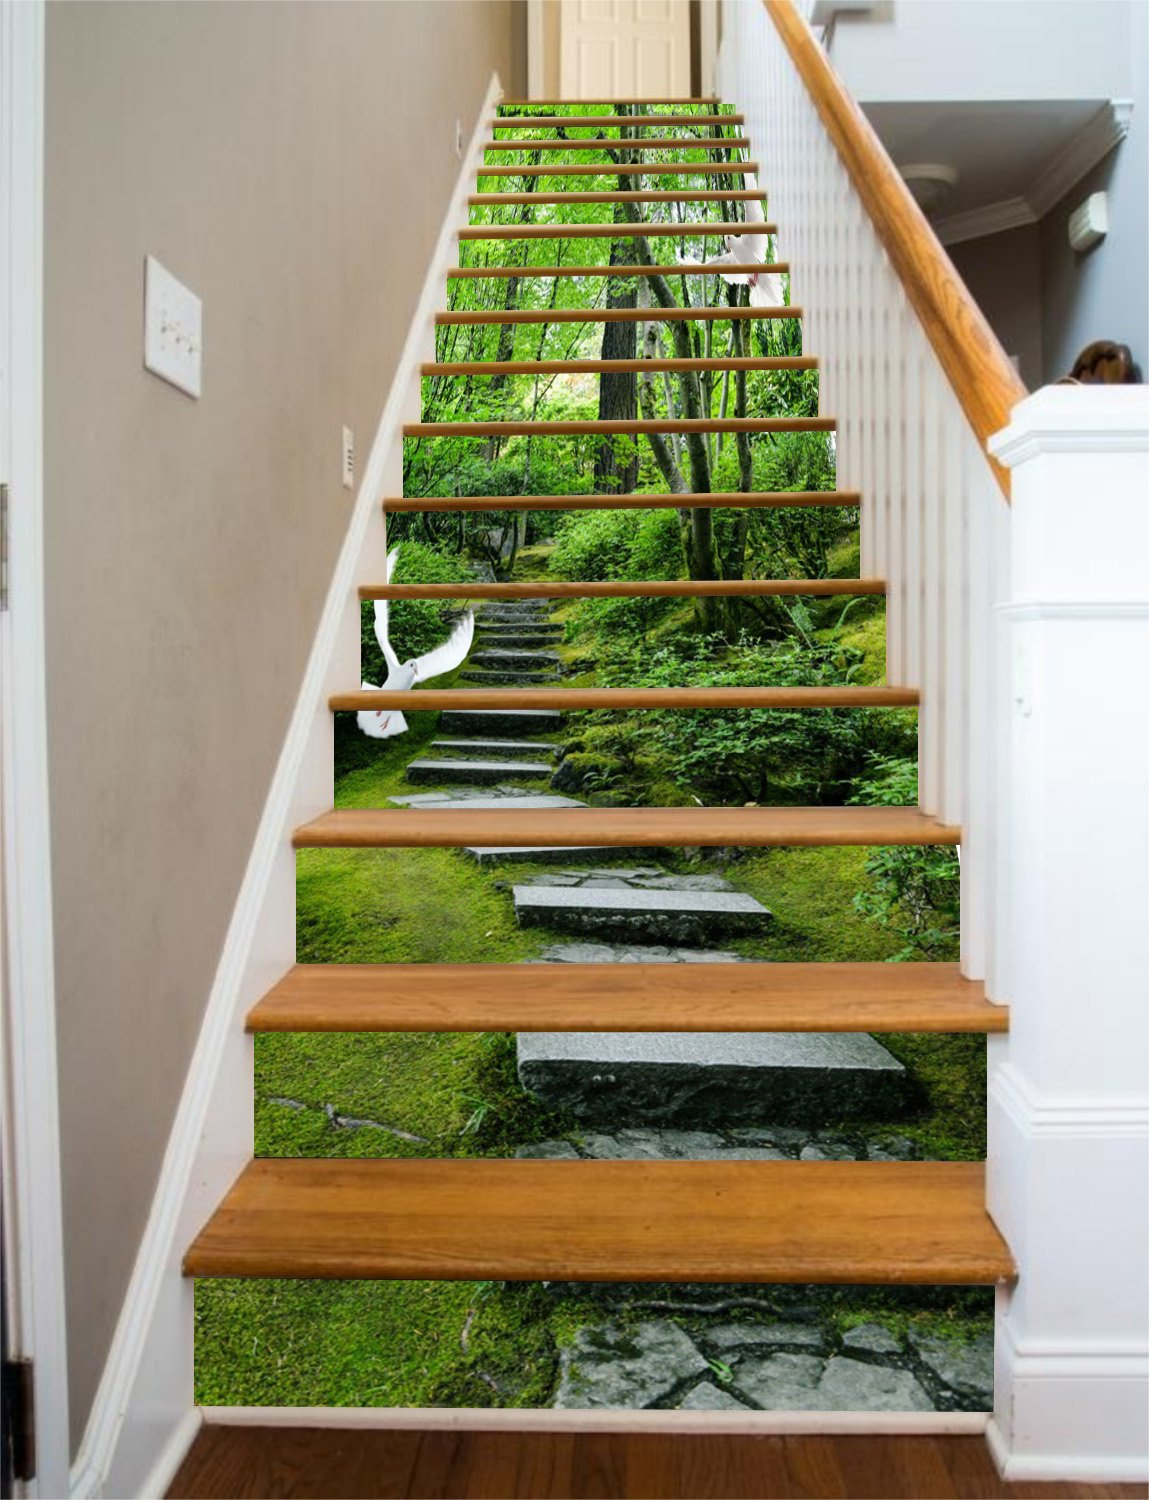 Green Road Mountain Stair Risers Decoration